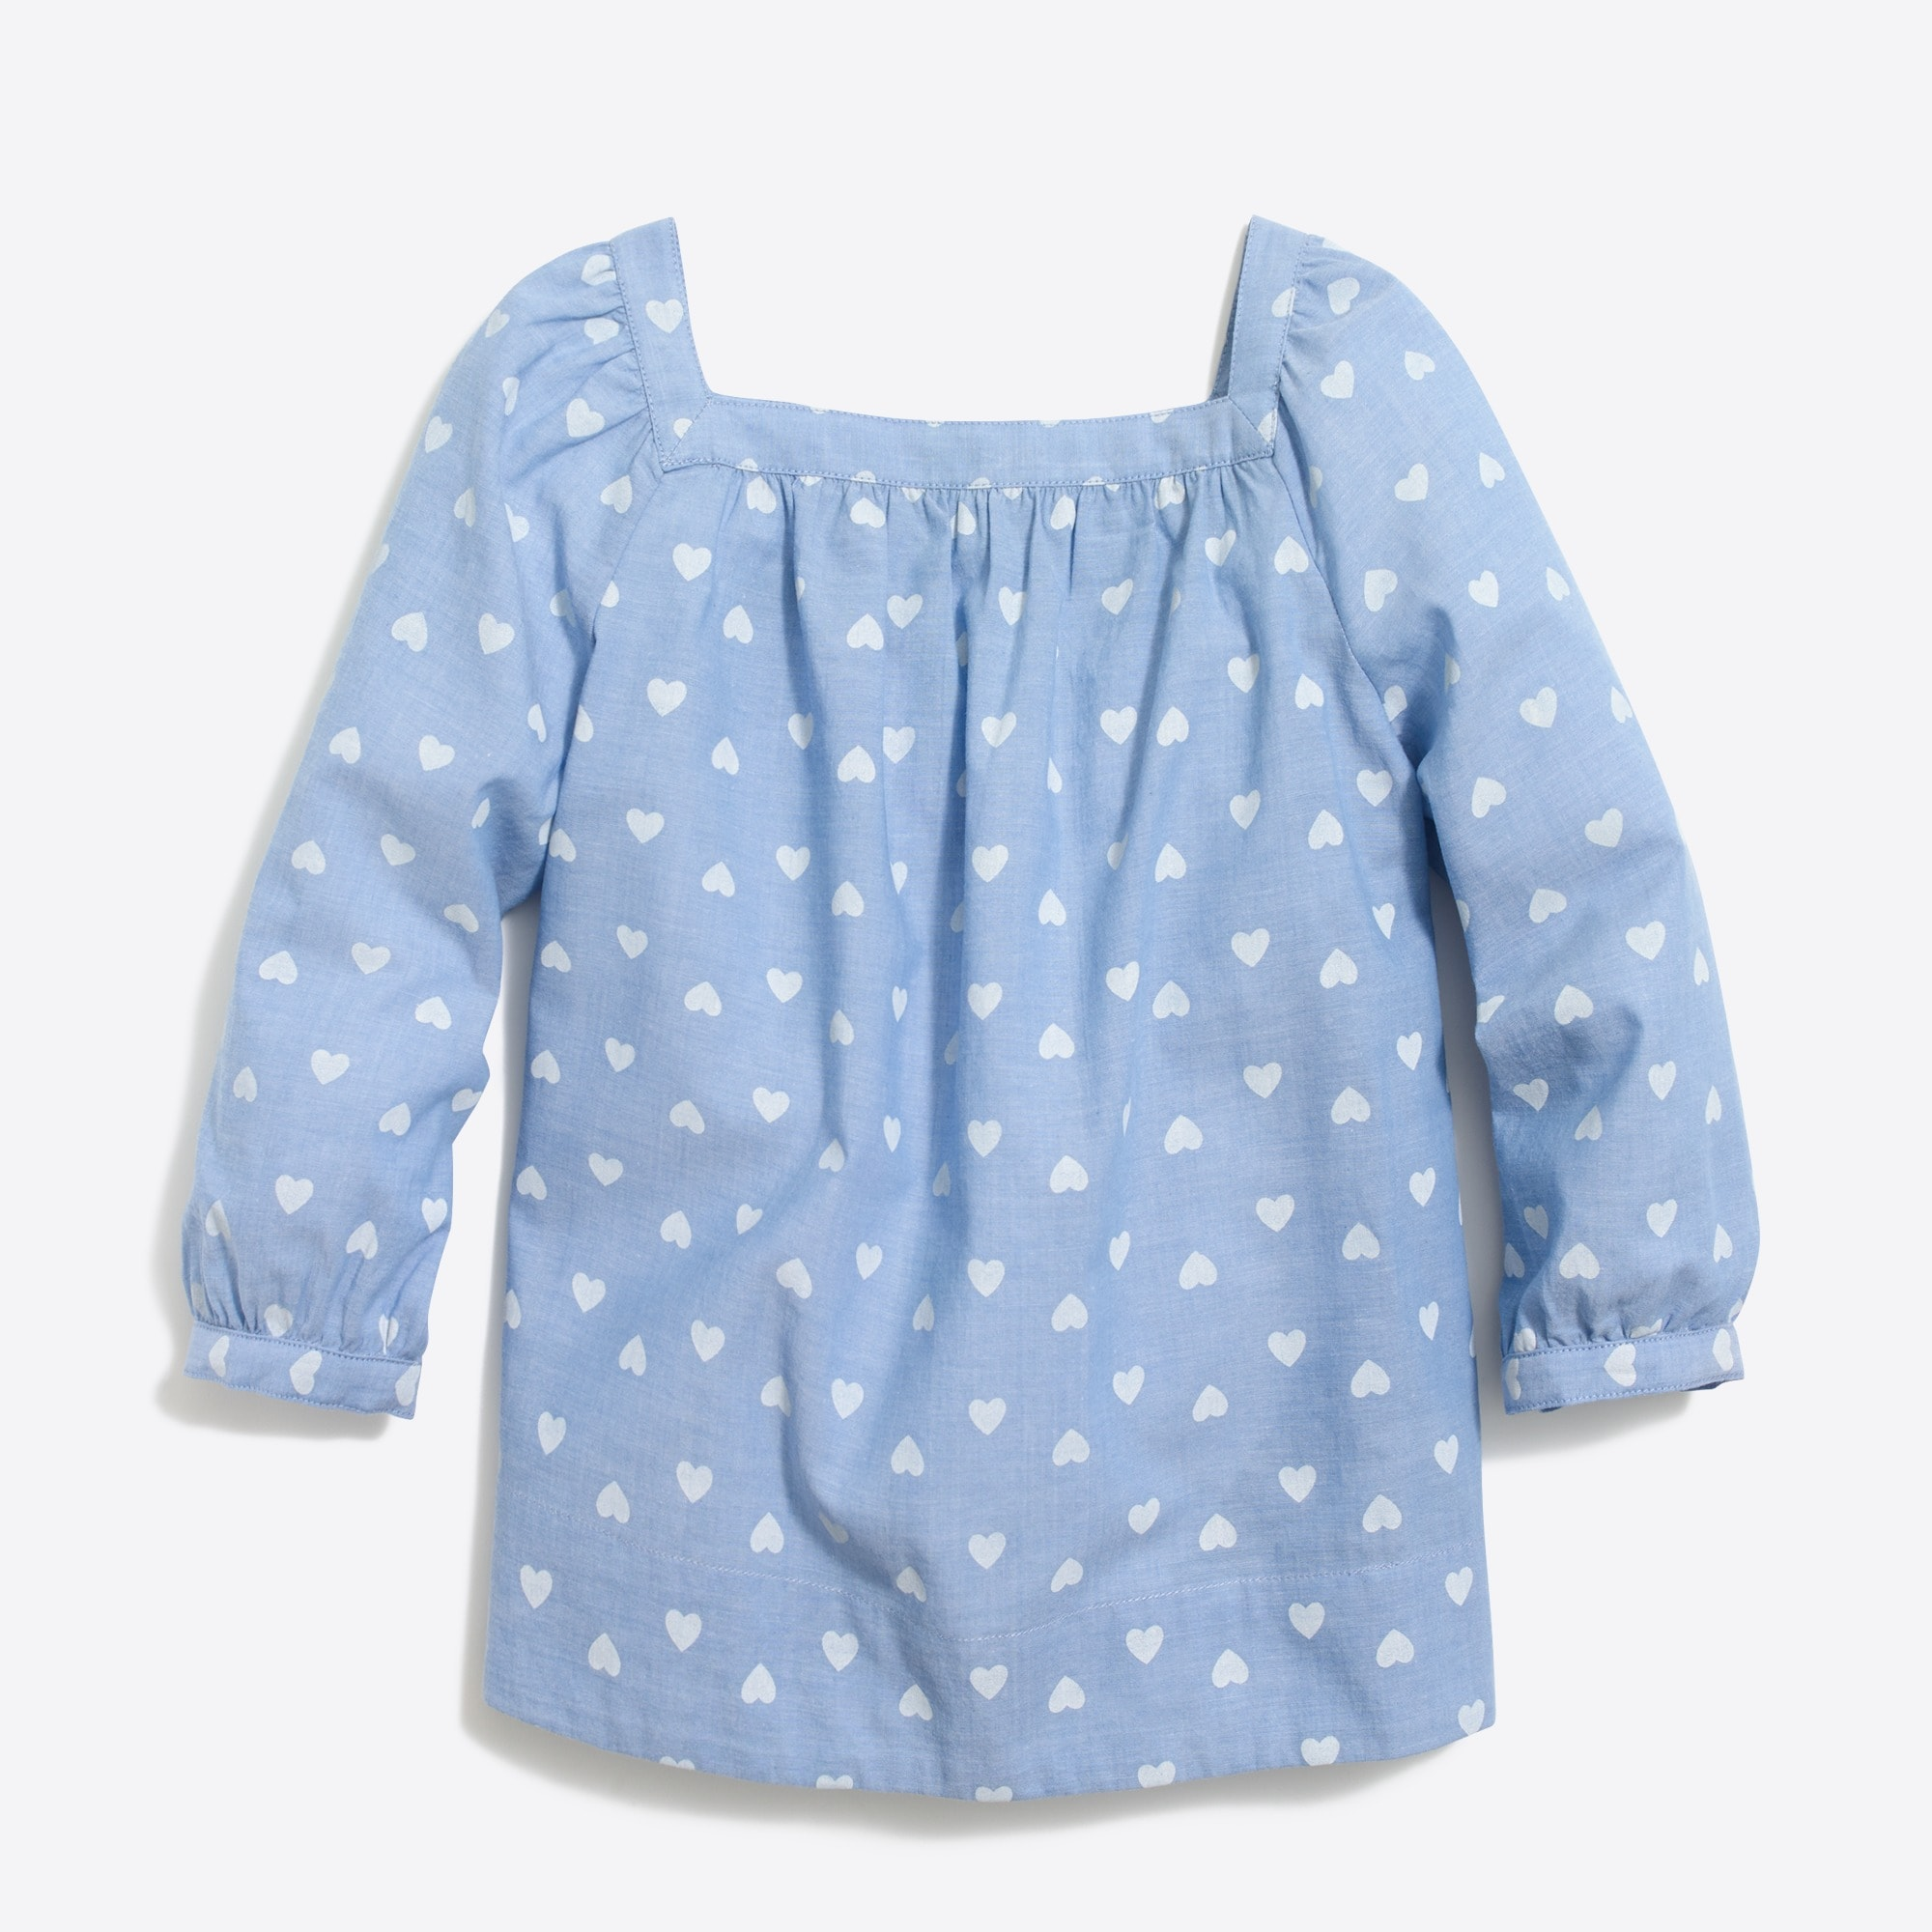 Image 2 for Girls' heart-print peasant top